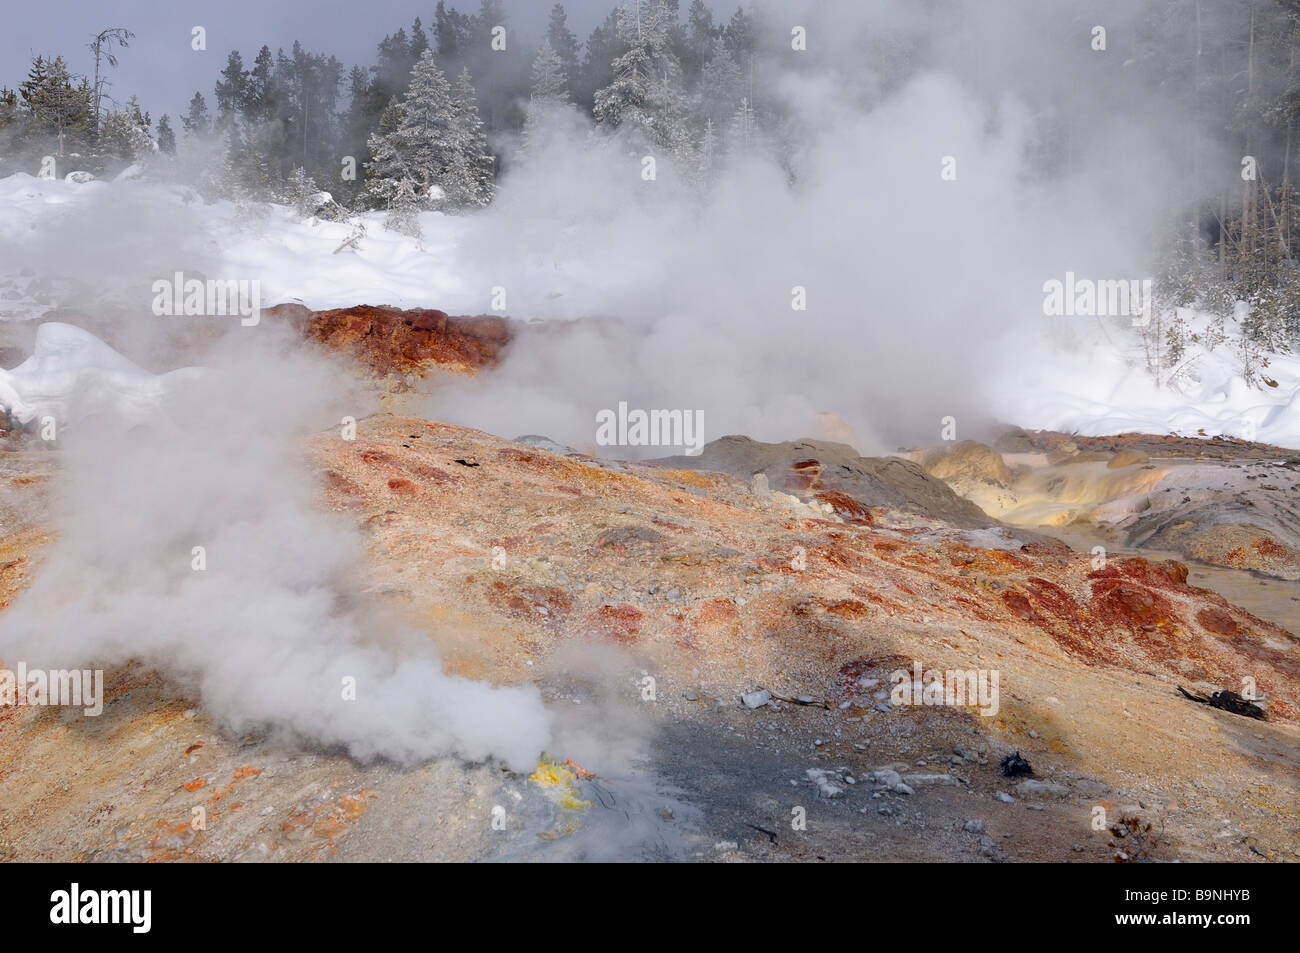 Hot steam in winter from Steamboat Geyser and fumarole in Norris Geyser Basin Yellowstone Park Stock Photo